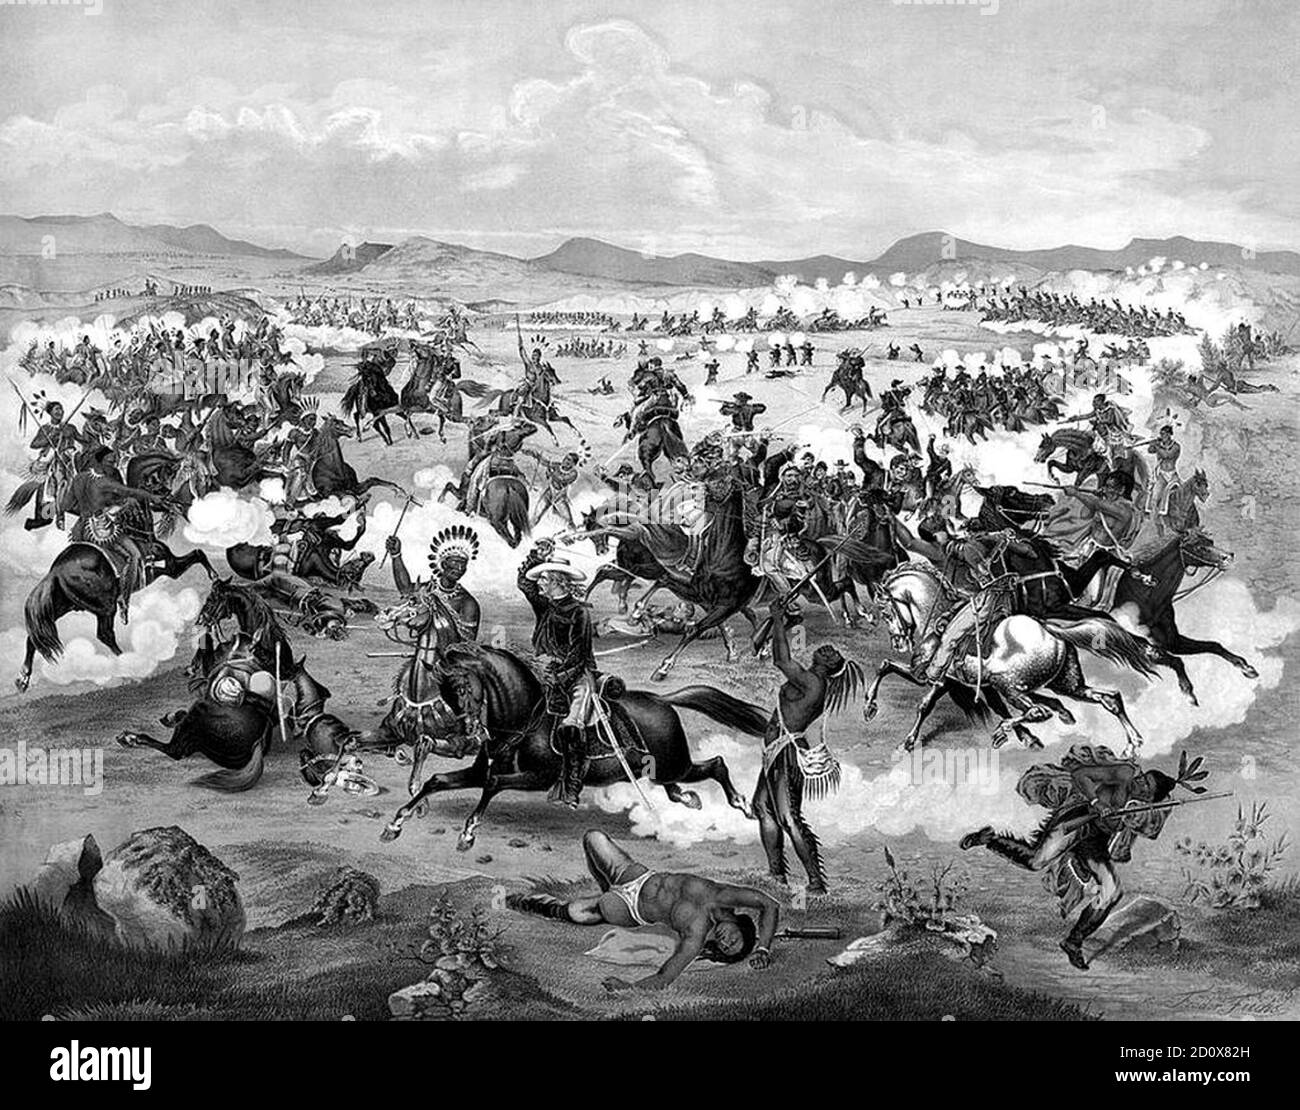 1876 illustration of Lieutenant Colonel Custer on horseback and his U.S. Army troops making their last charge at the Battle of the Little Bighorn. Public domain picture by virtue of age. Originally published by Seifert Gugler & Co in 1876.   The Battle of the Little Bighorn, known to the Lakota and other Plains Indians as the Battle of the Greasy Grass and also commonly referred to as Custer's Last Stand, was an armed engagement between combined forces of the Lakota, Northern Cheyenne, and Arapaho tribes and the 7th Cavalry Regiment of the United States Army. The battle, which resulted in the Stock Photo